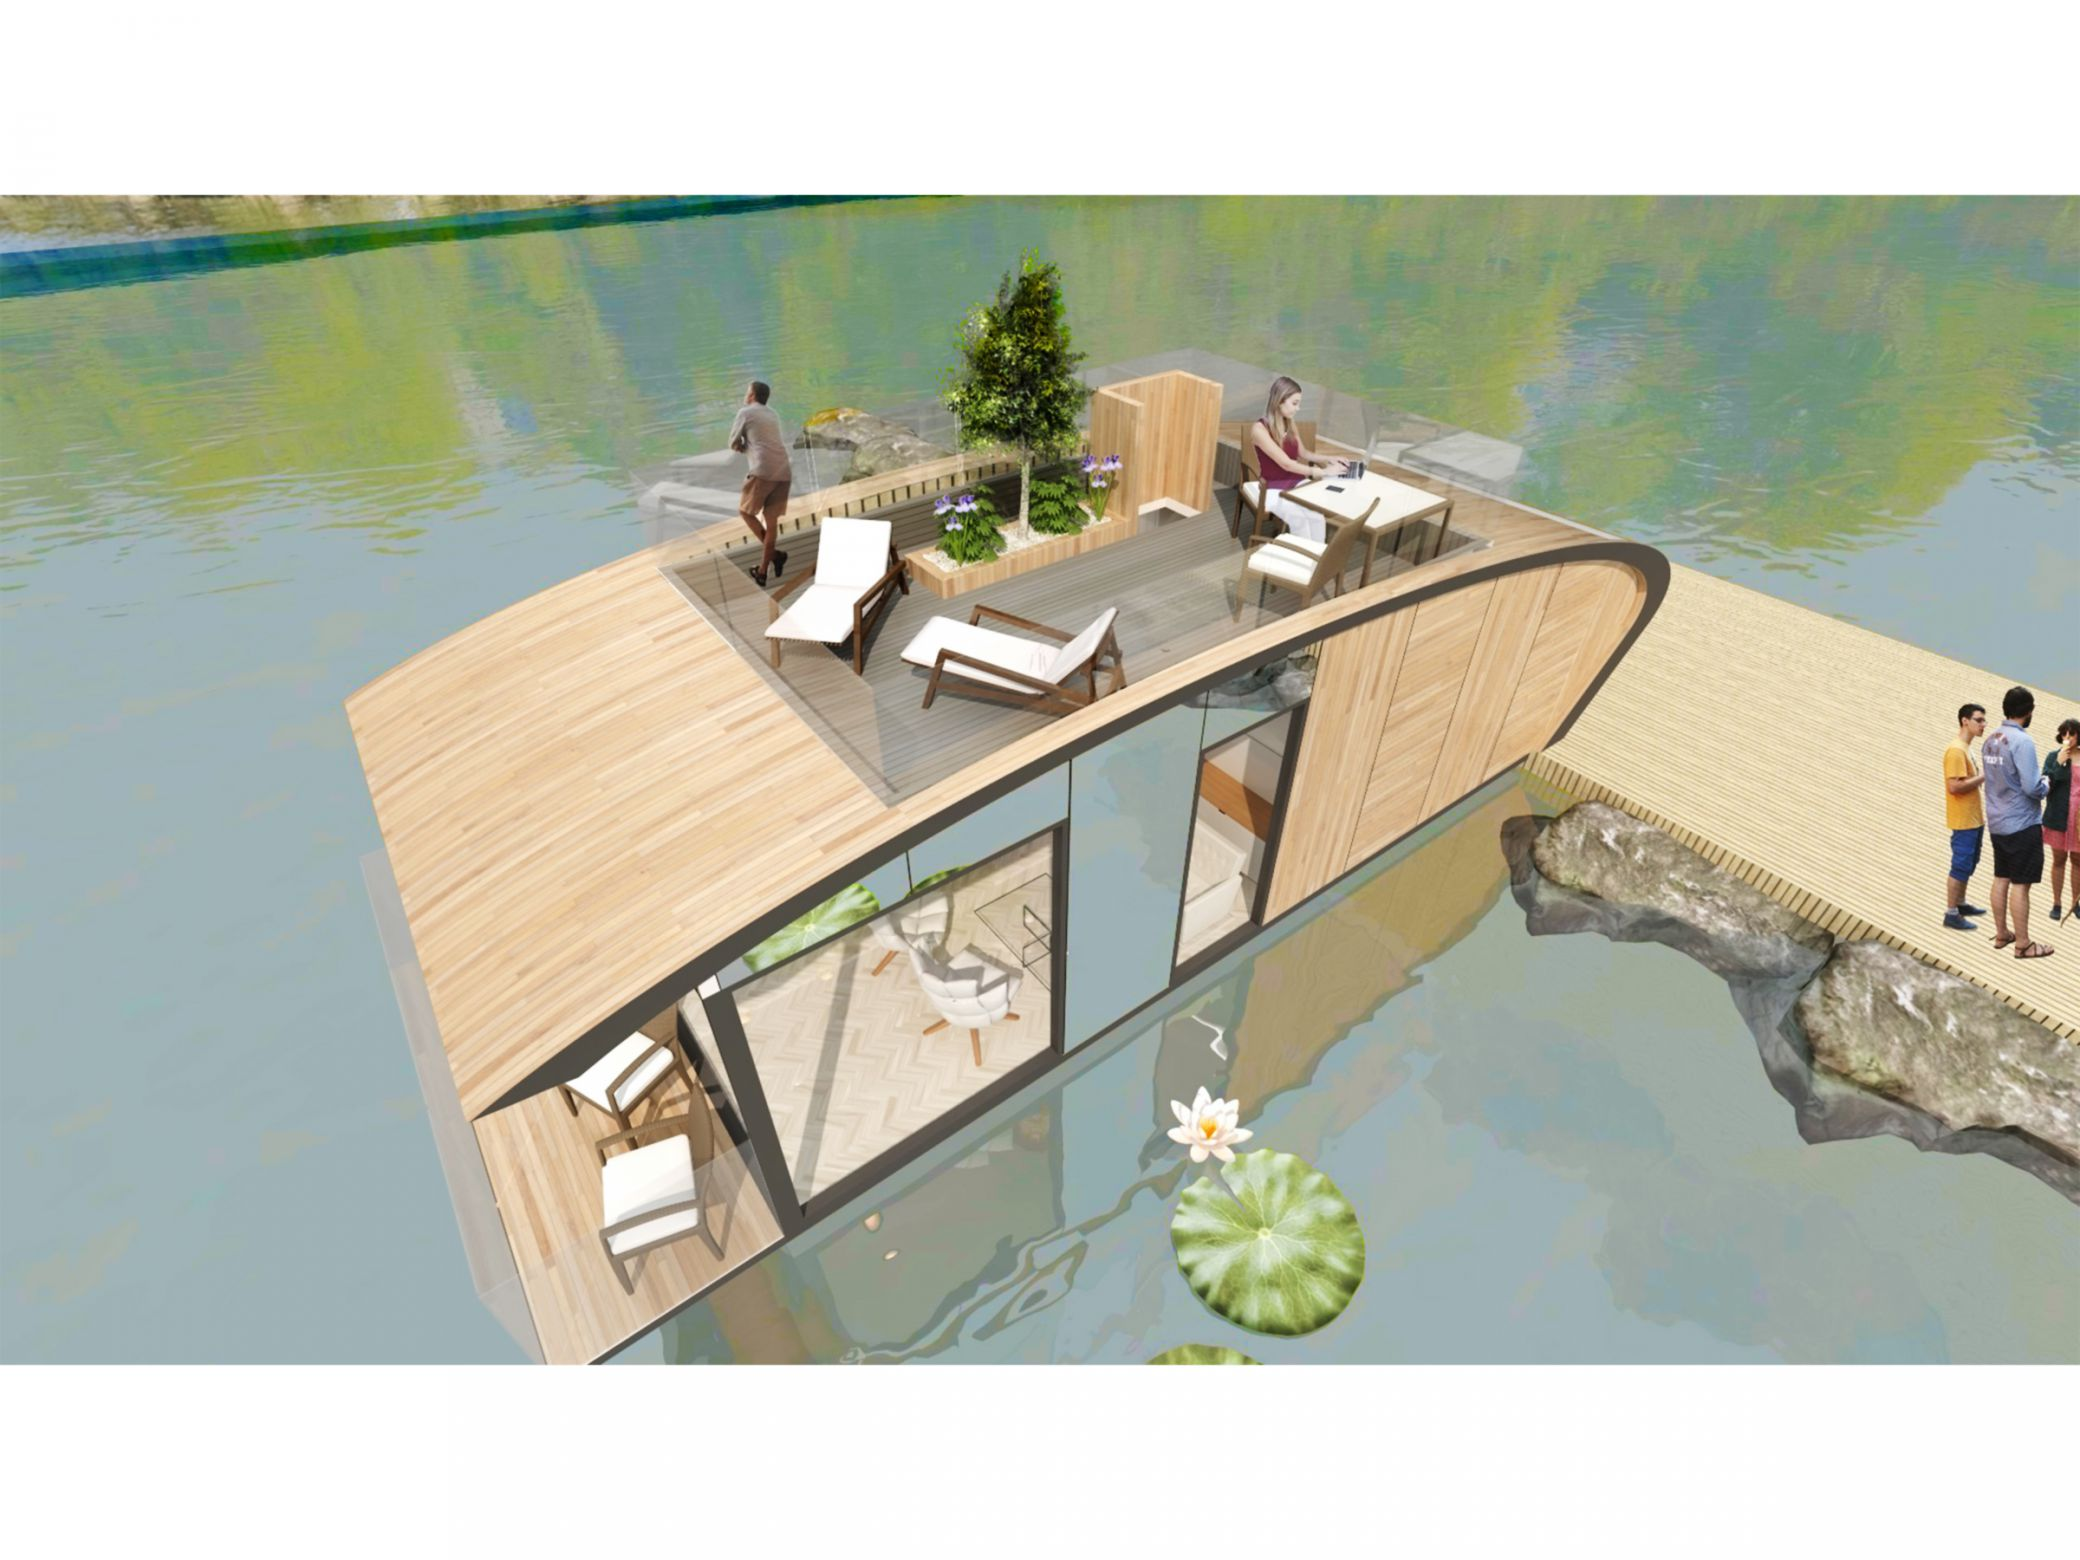 Floating Habitats glamping